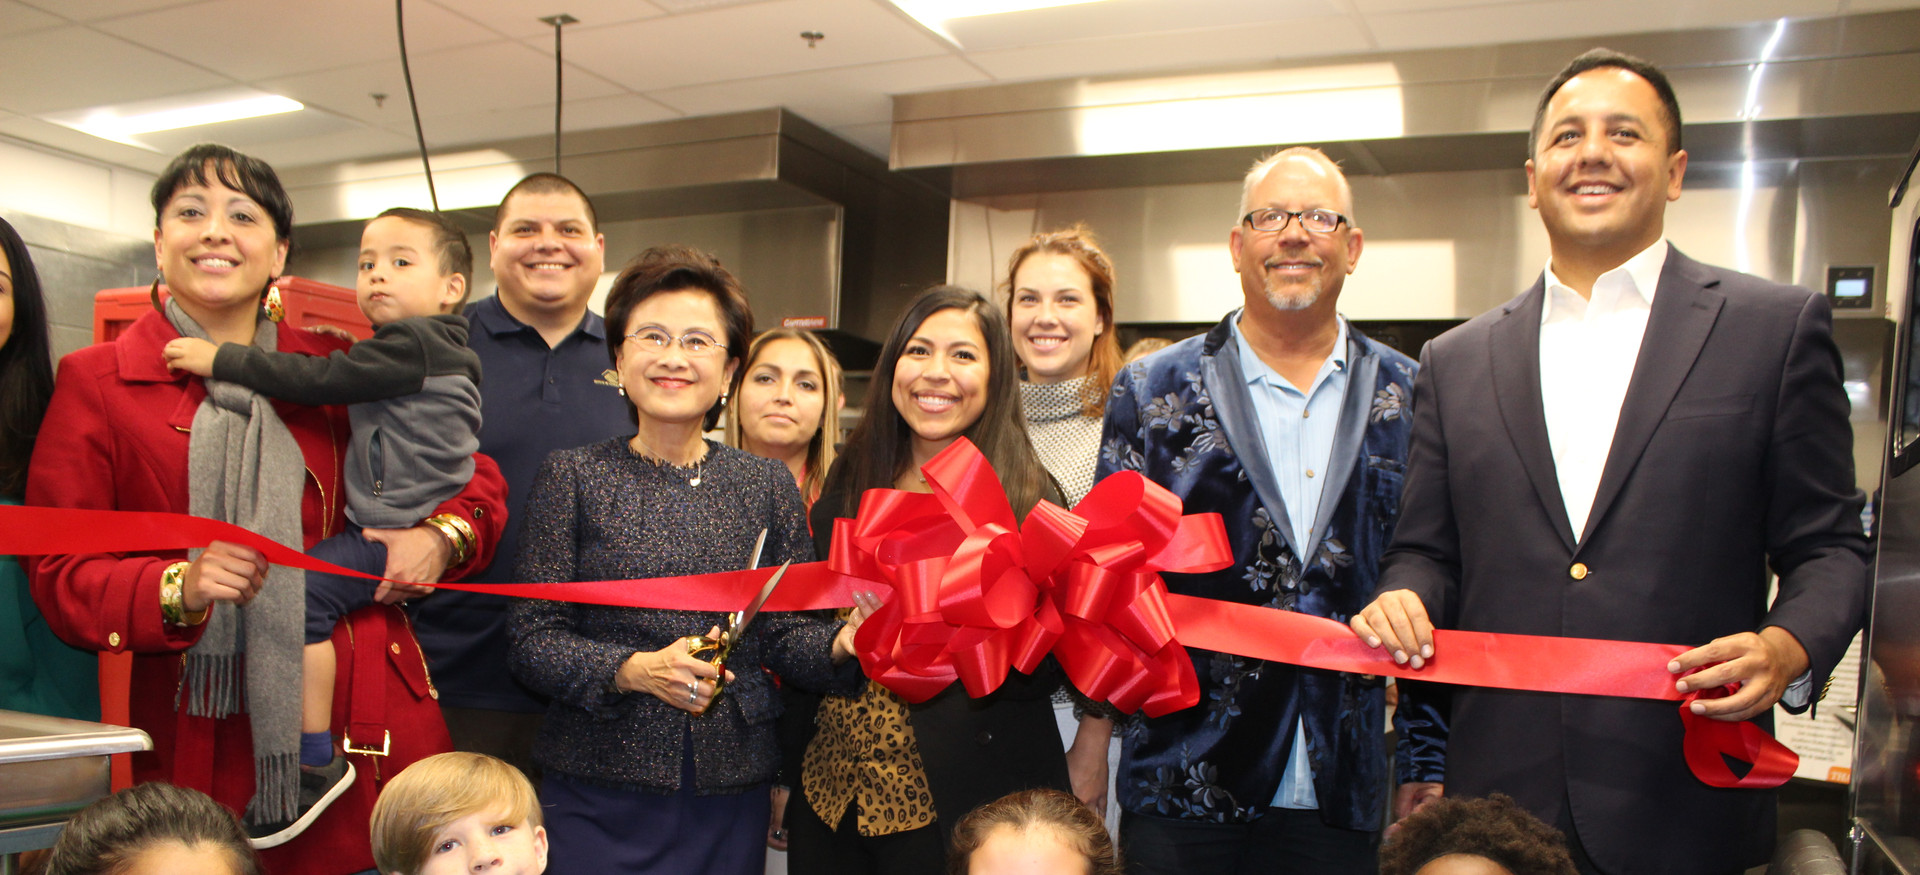 New Commercial Kitchen Will Help Serve More Than 300,000 Meals